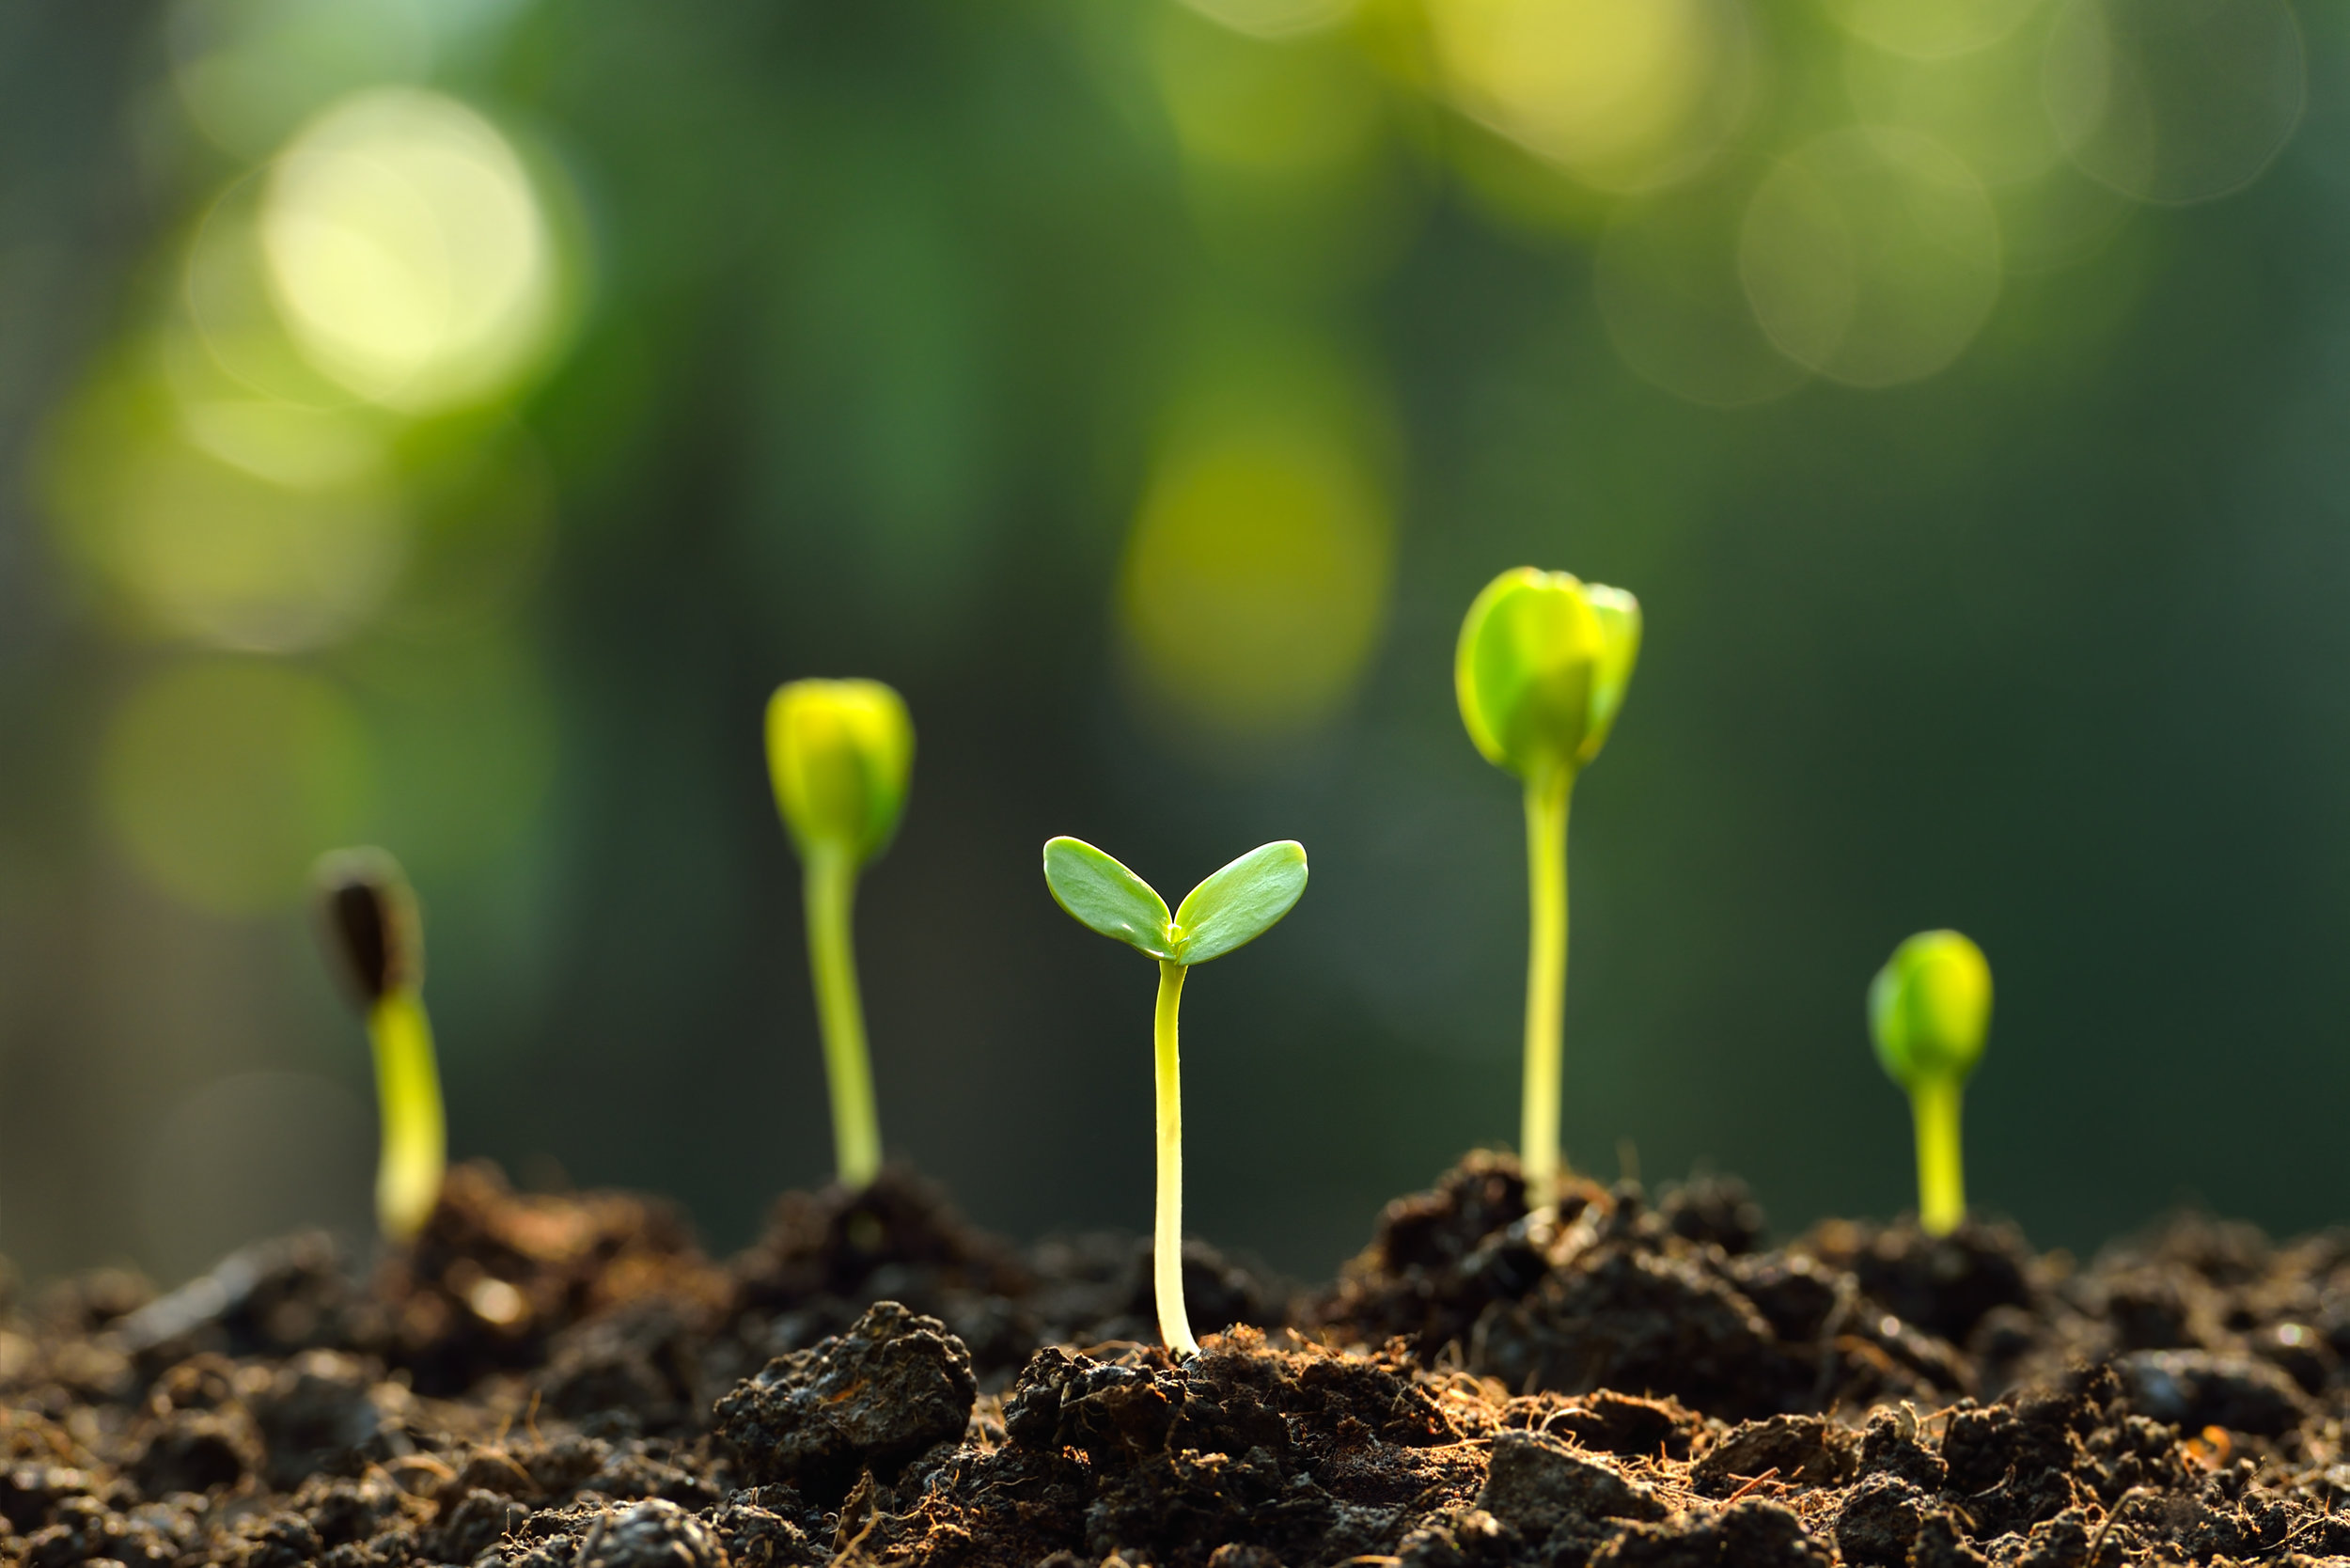 Spreading your marketing seeds